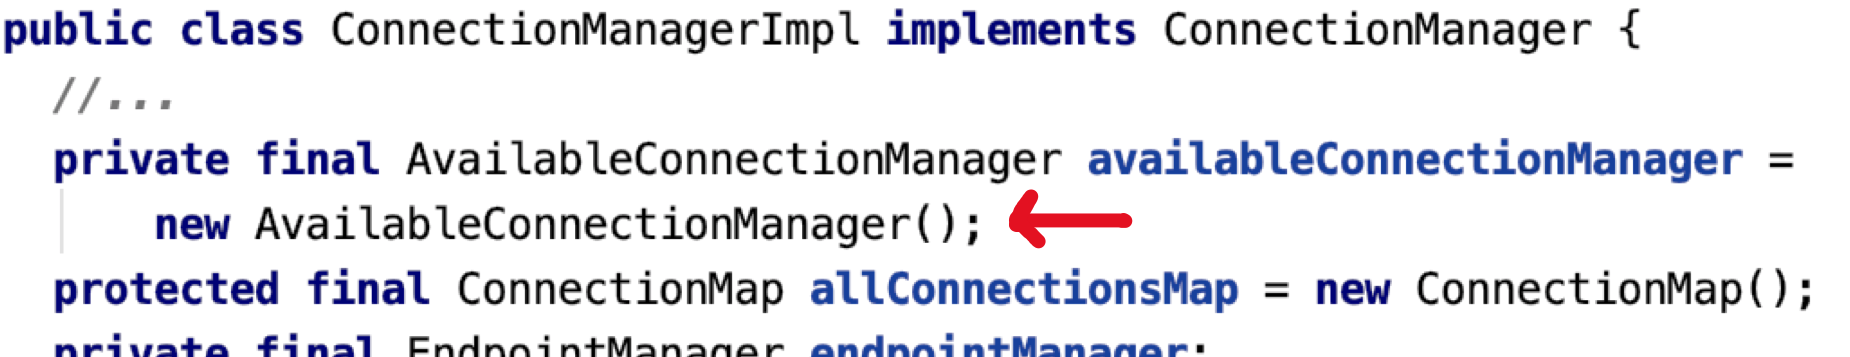 Figure 6: Refactored ConnectionManagerImpl - Code snippet of ConnectionManagerImpl, with a line highlighted showing that a new class has been introduced, called AvailableConnectionManager.